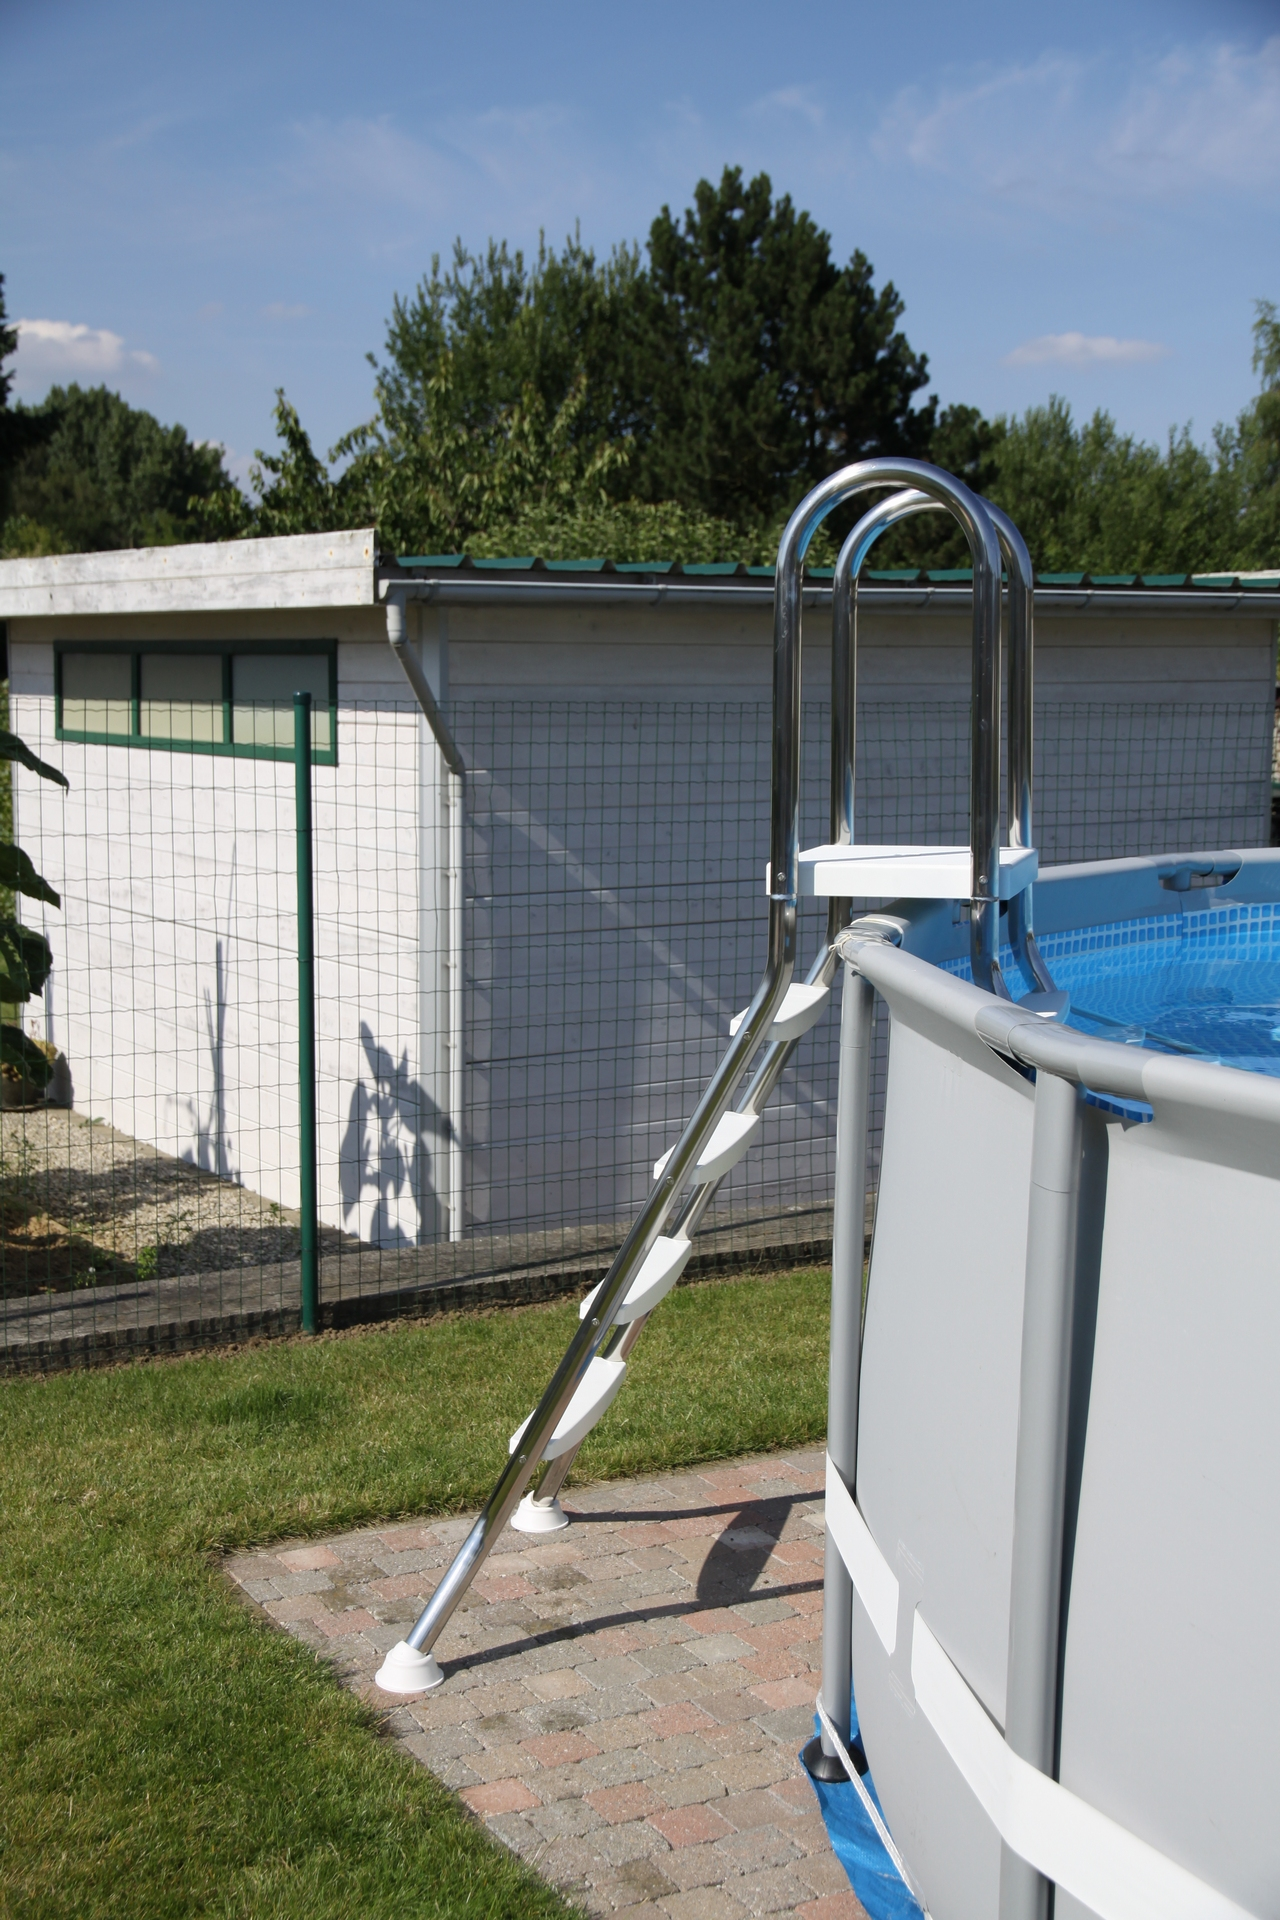 Intex Zwembad Test Chelle De Piscine En Inox Astral Pool Piscine Co